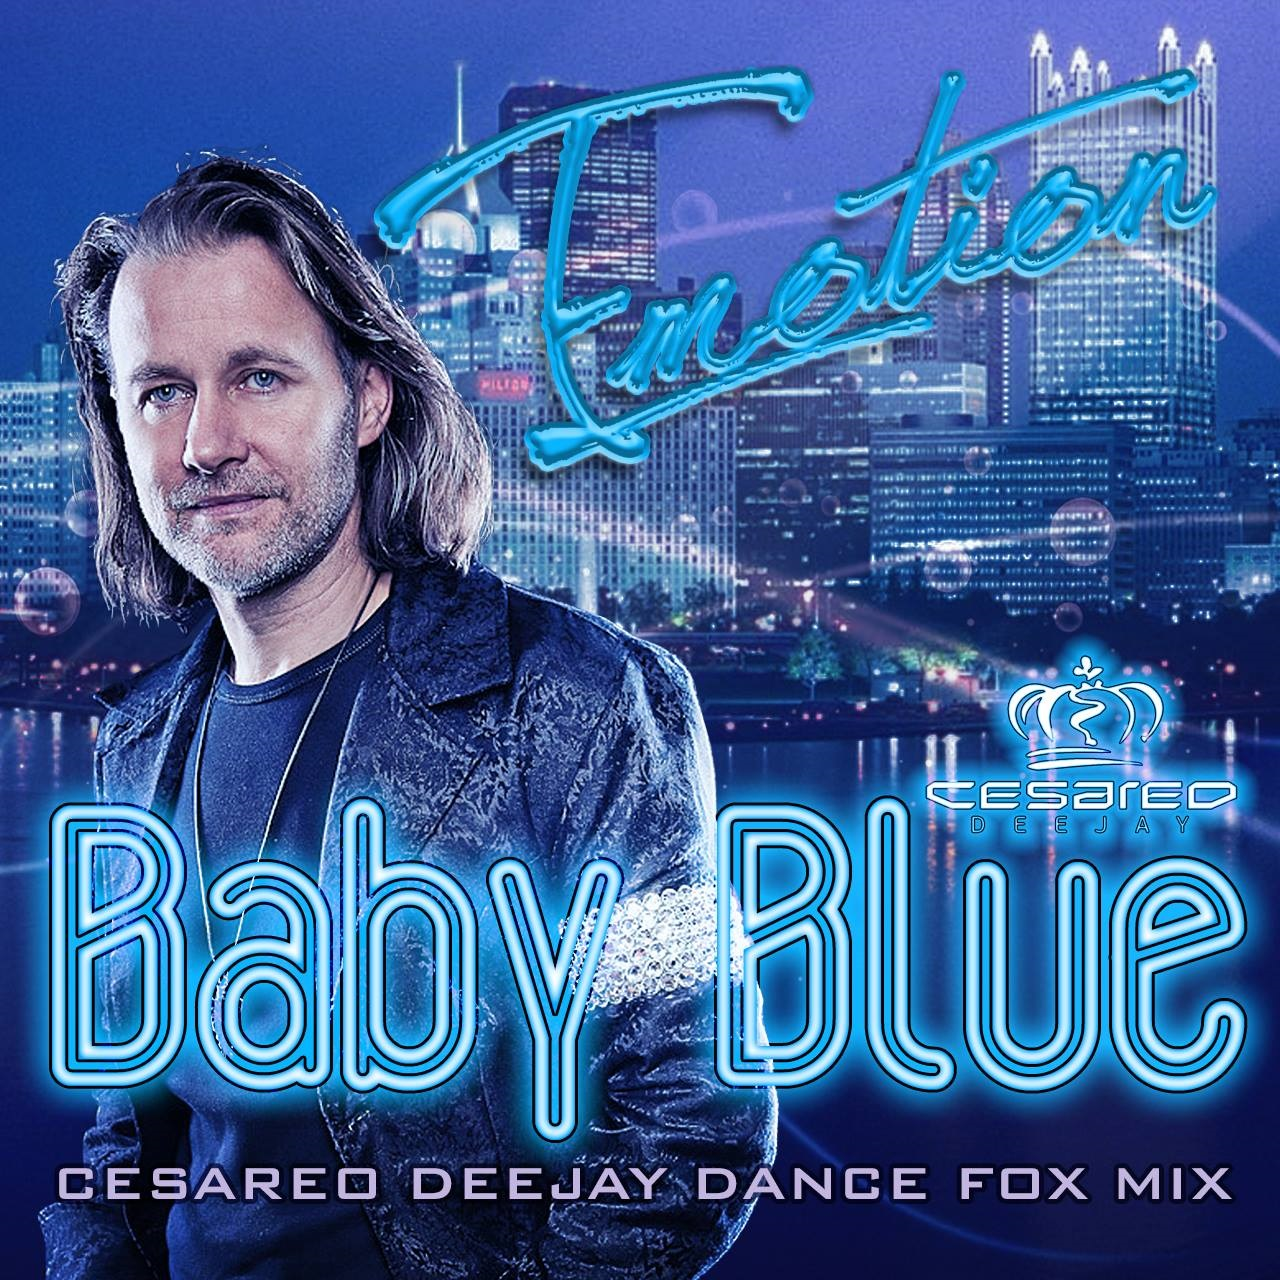 BABY BLUE DJ CESAREO REMIX COVER